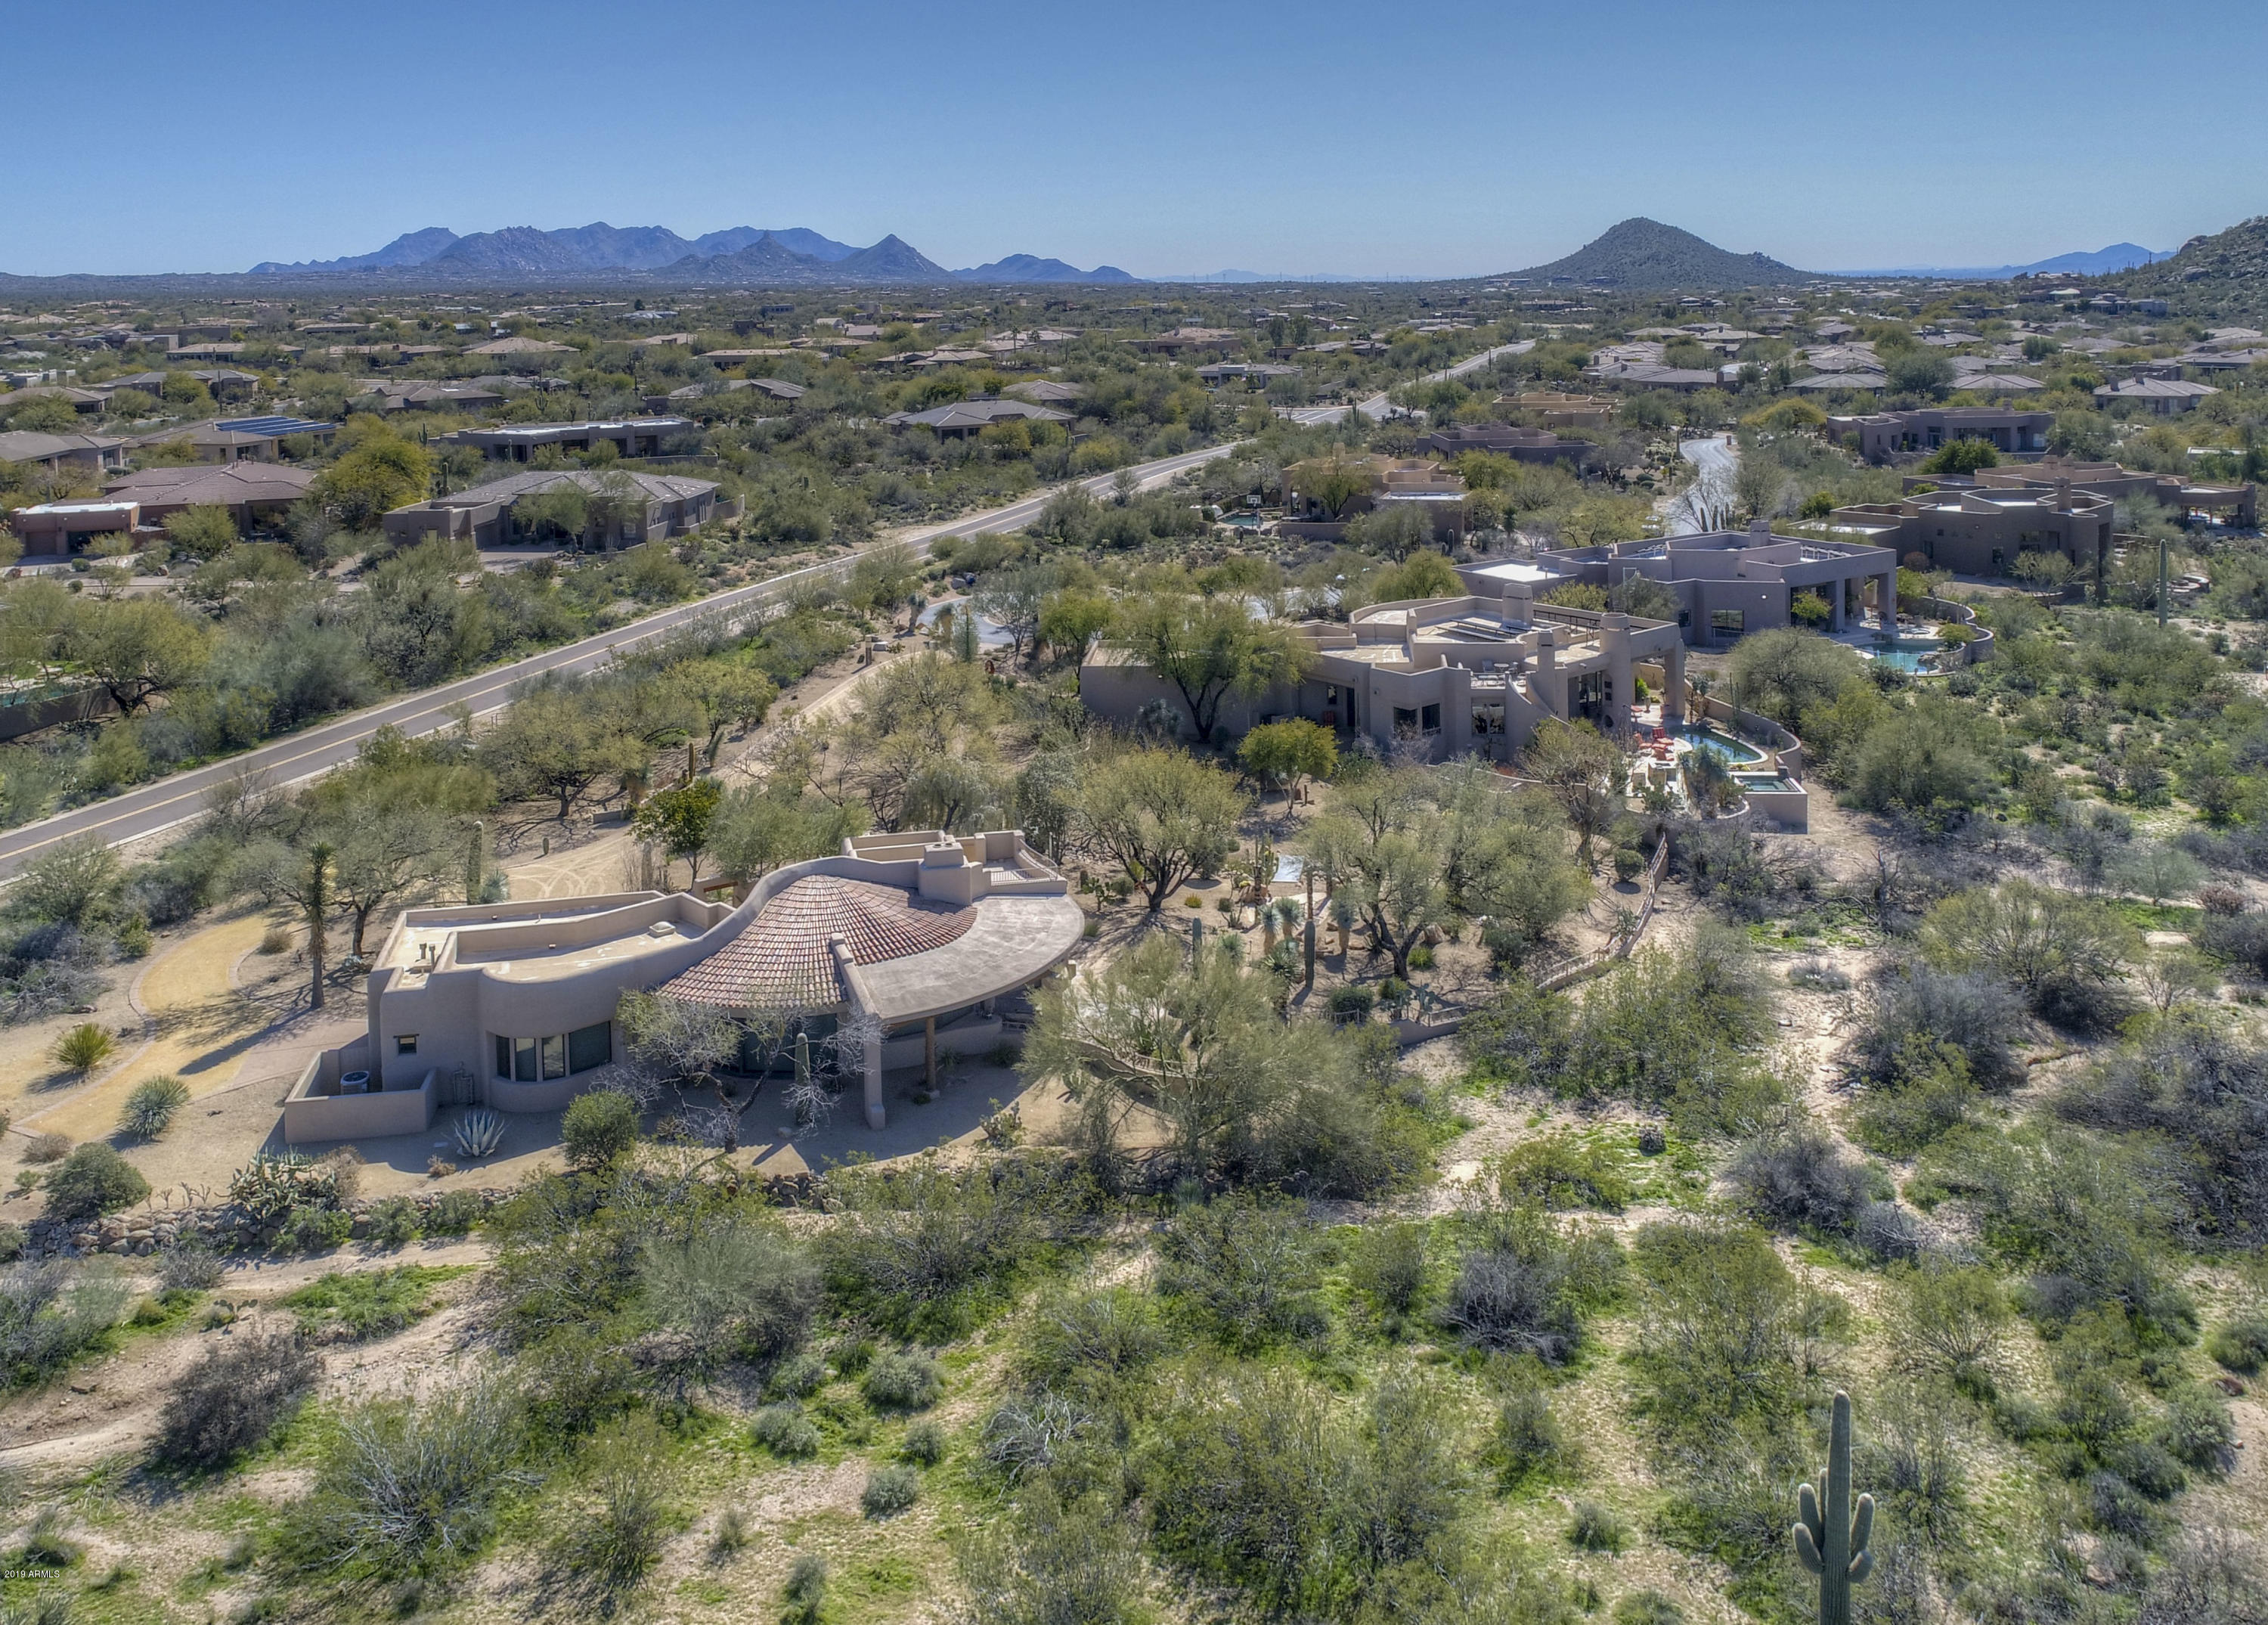 MLS 5882760 34068 N 79TH Way, Scottsdale, AZ 85266 Scottsdale AZ The Boulders